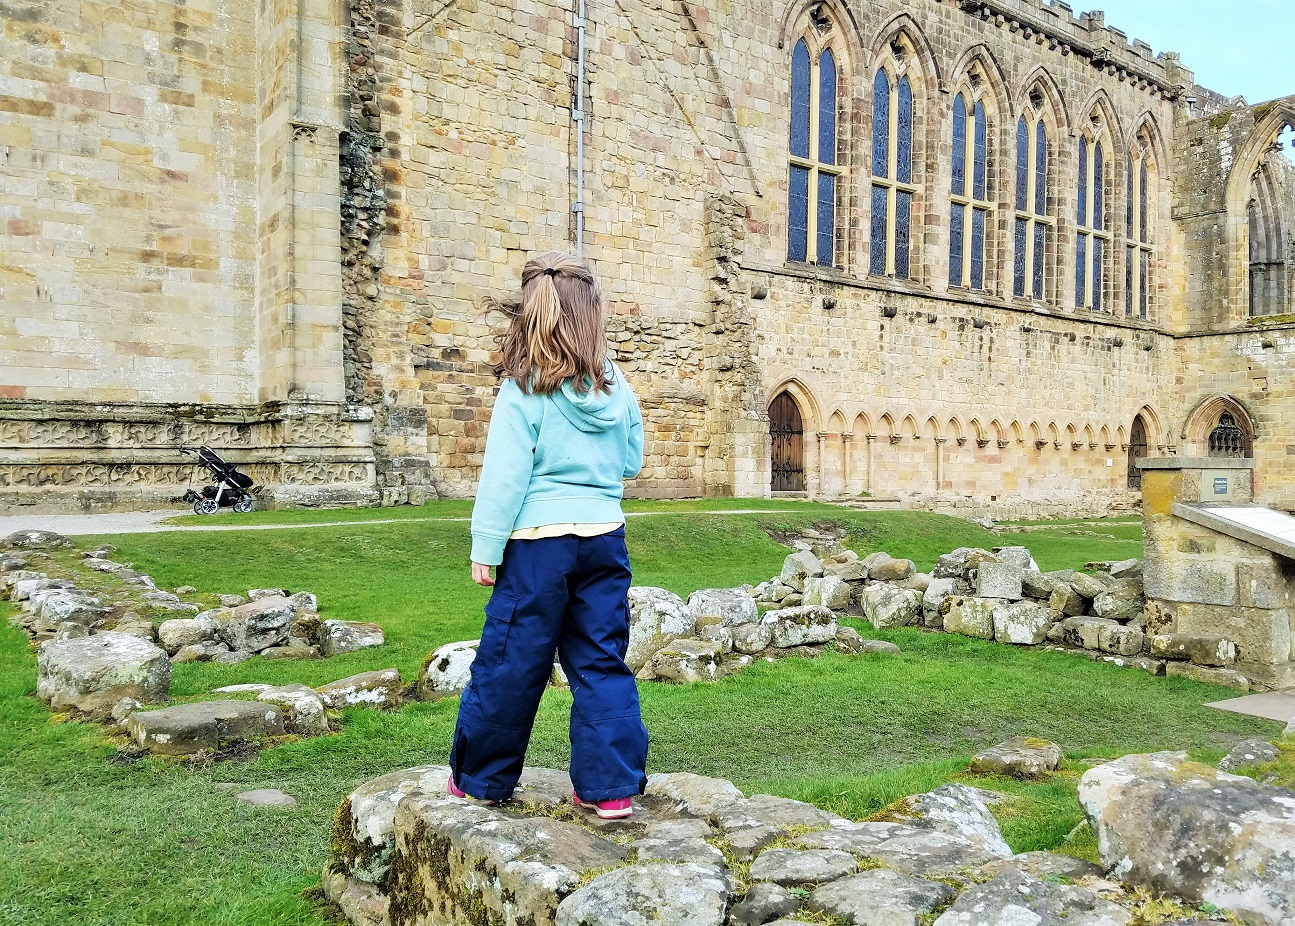 parenting myths that prop up mainstream parenting child in the grounds of a ruined church